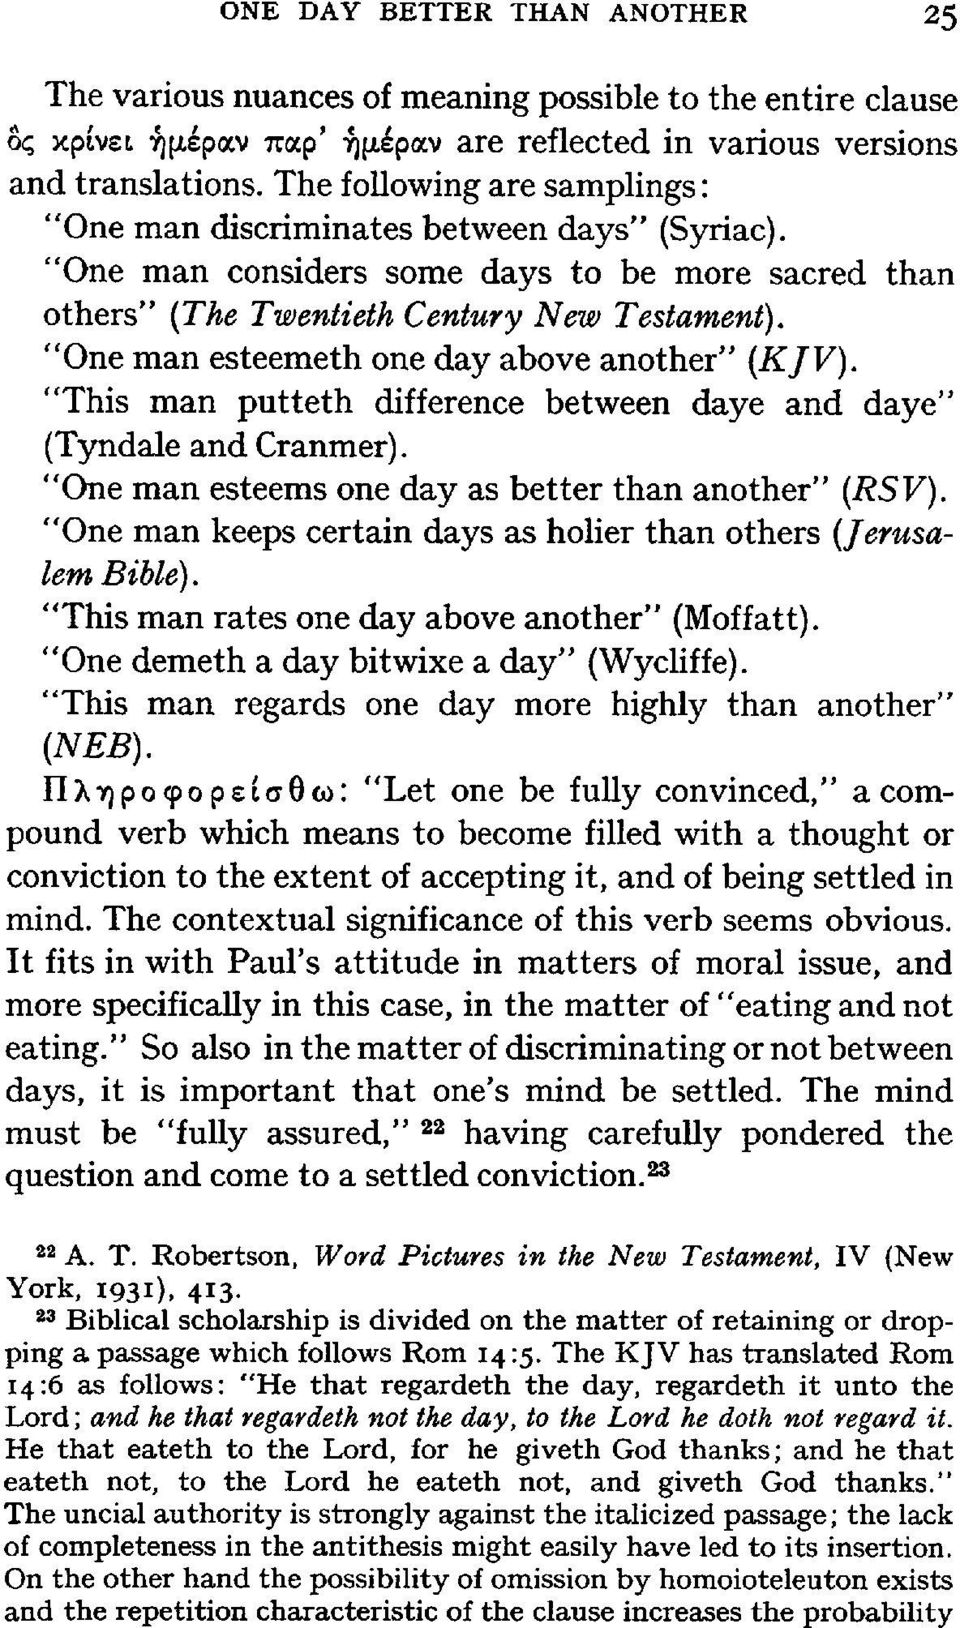 """One man esteemeth one day above anotherjj (KJV). ""This man putteth difference between daye and daye"" (Tyndale and Cranmer). ""One man esteems one day as better than anotherjj (RSV)."